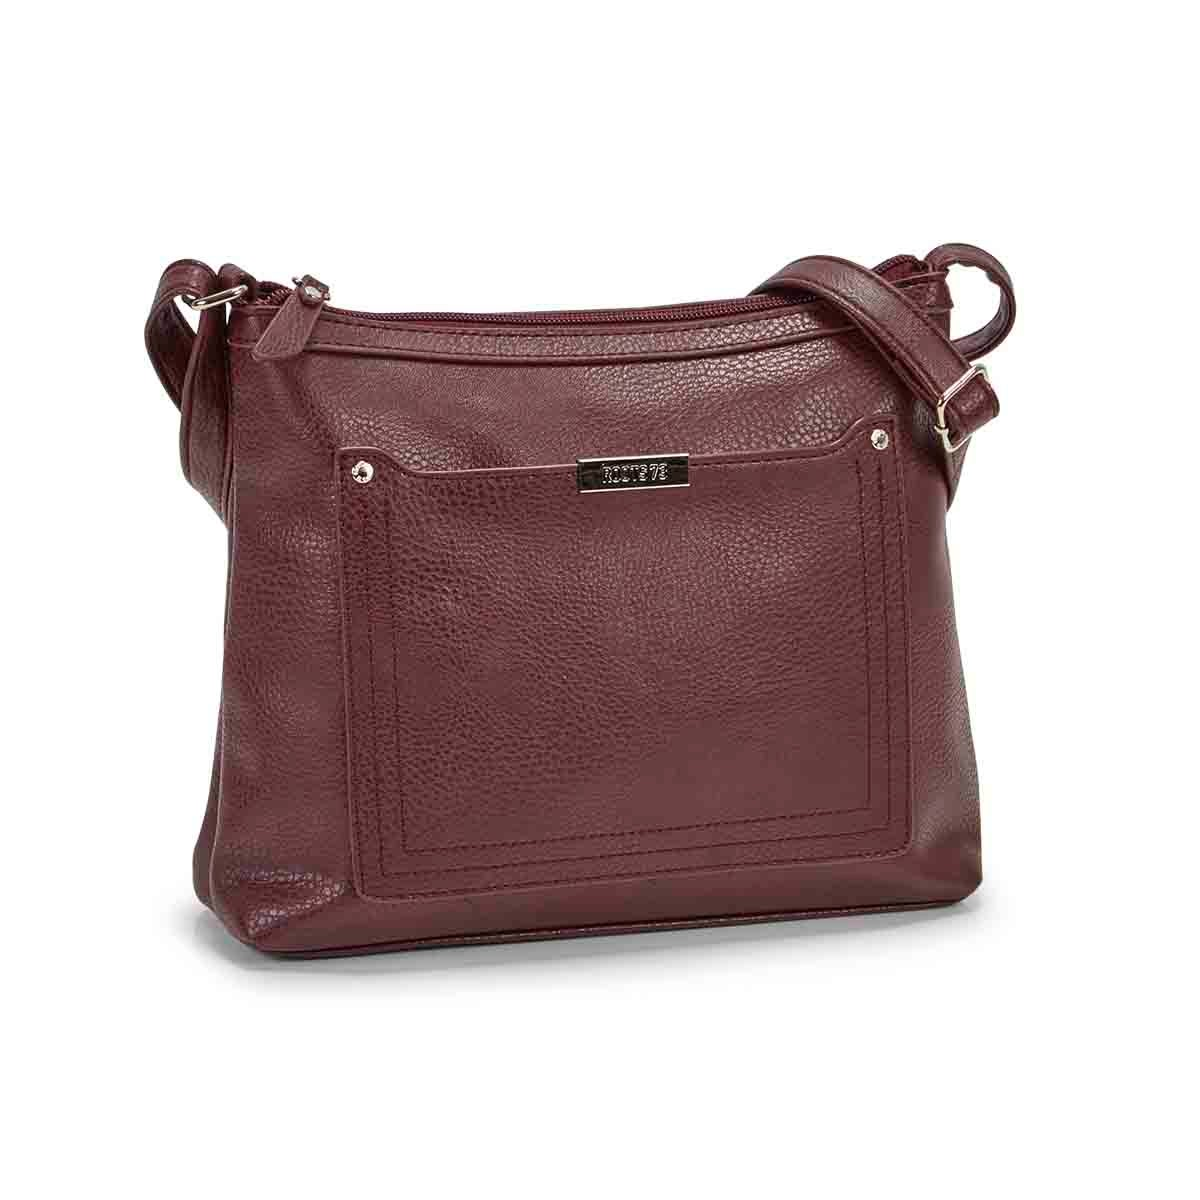 Women's R5438 burgundy stitched pocket crossbody